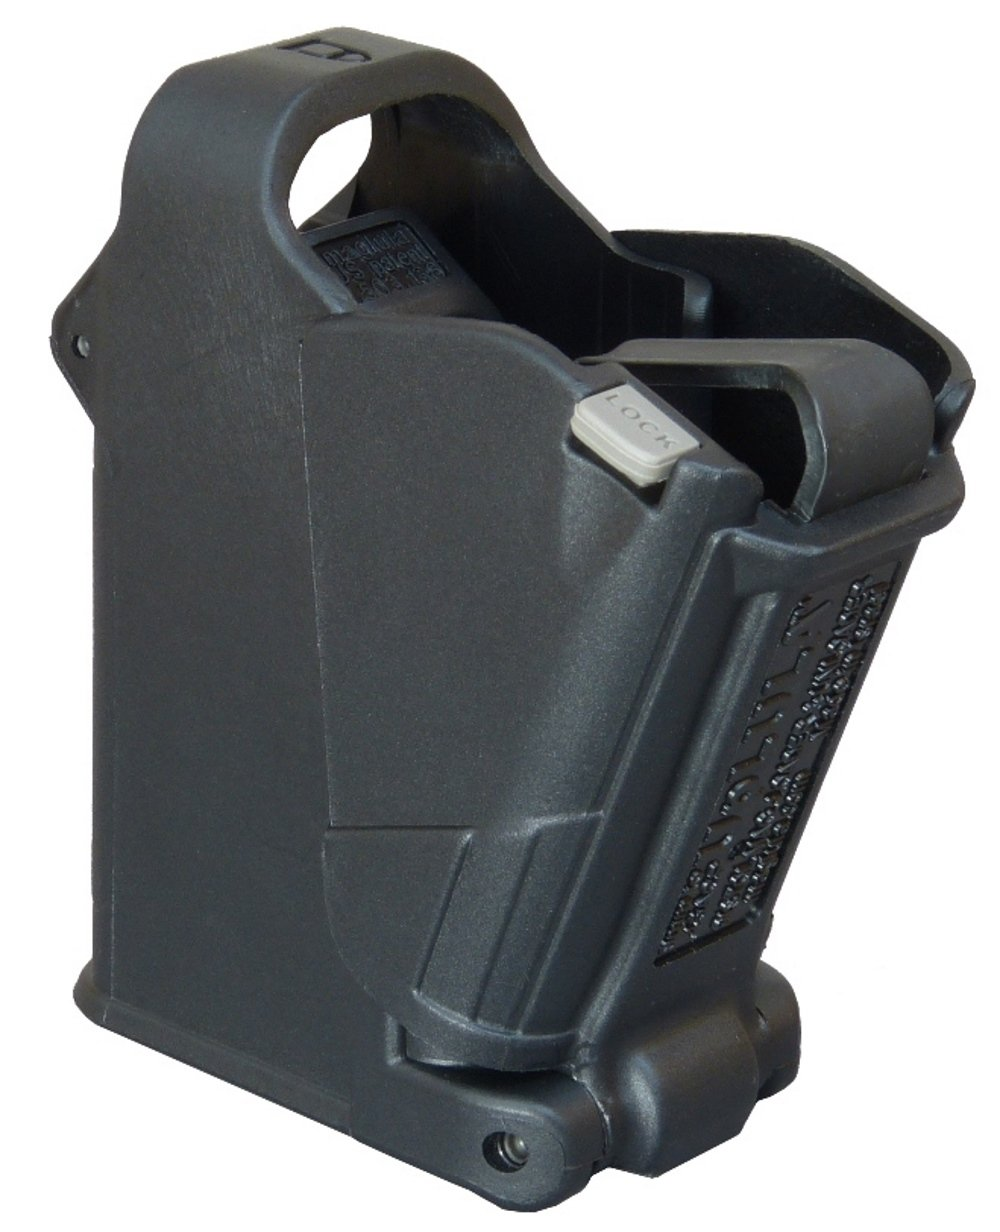 Up-LULA Beretta Speed Mag Loader - 9 mm to 45 ACP Maglula Uplula HandGun Speed Magazine Loader. Loads all 9mm Luger, 10mm, .357 Sig, 10mm, .40, and .45ACP cal berretta by Maglula ltd.